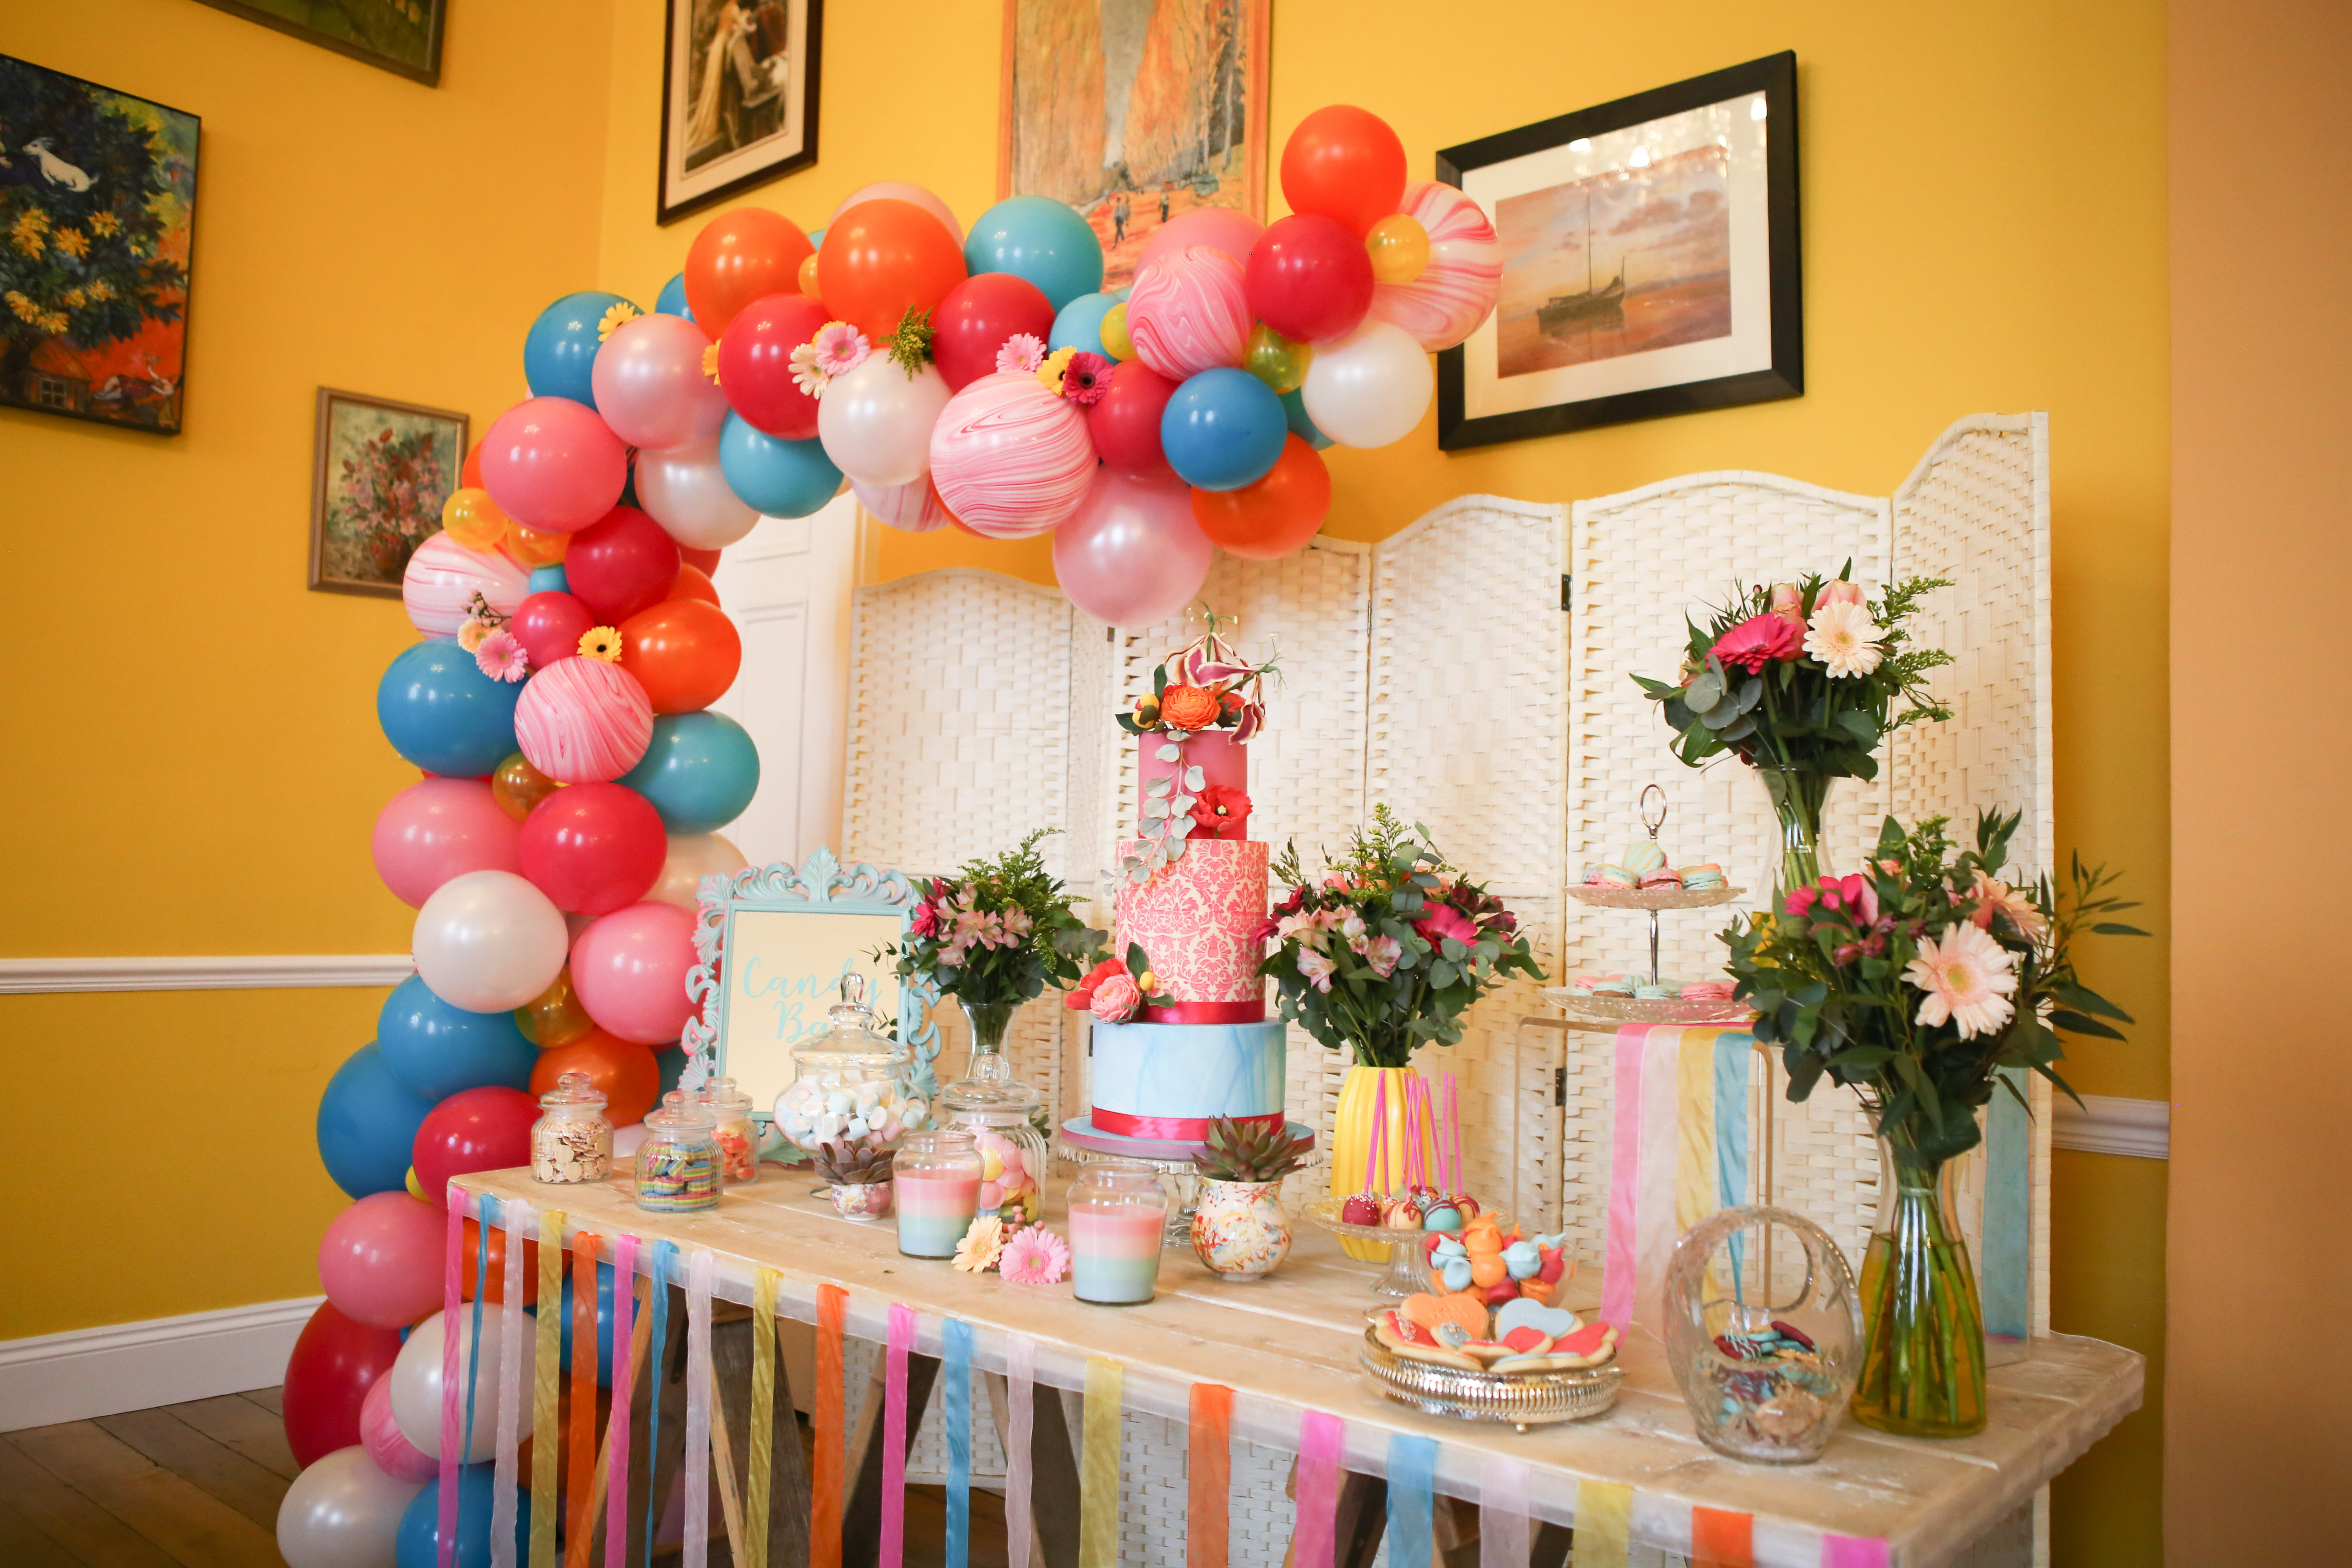 Cake table with colourful balloon arch